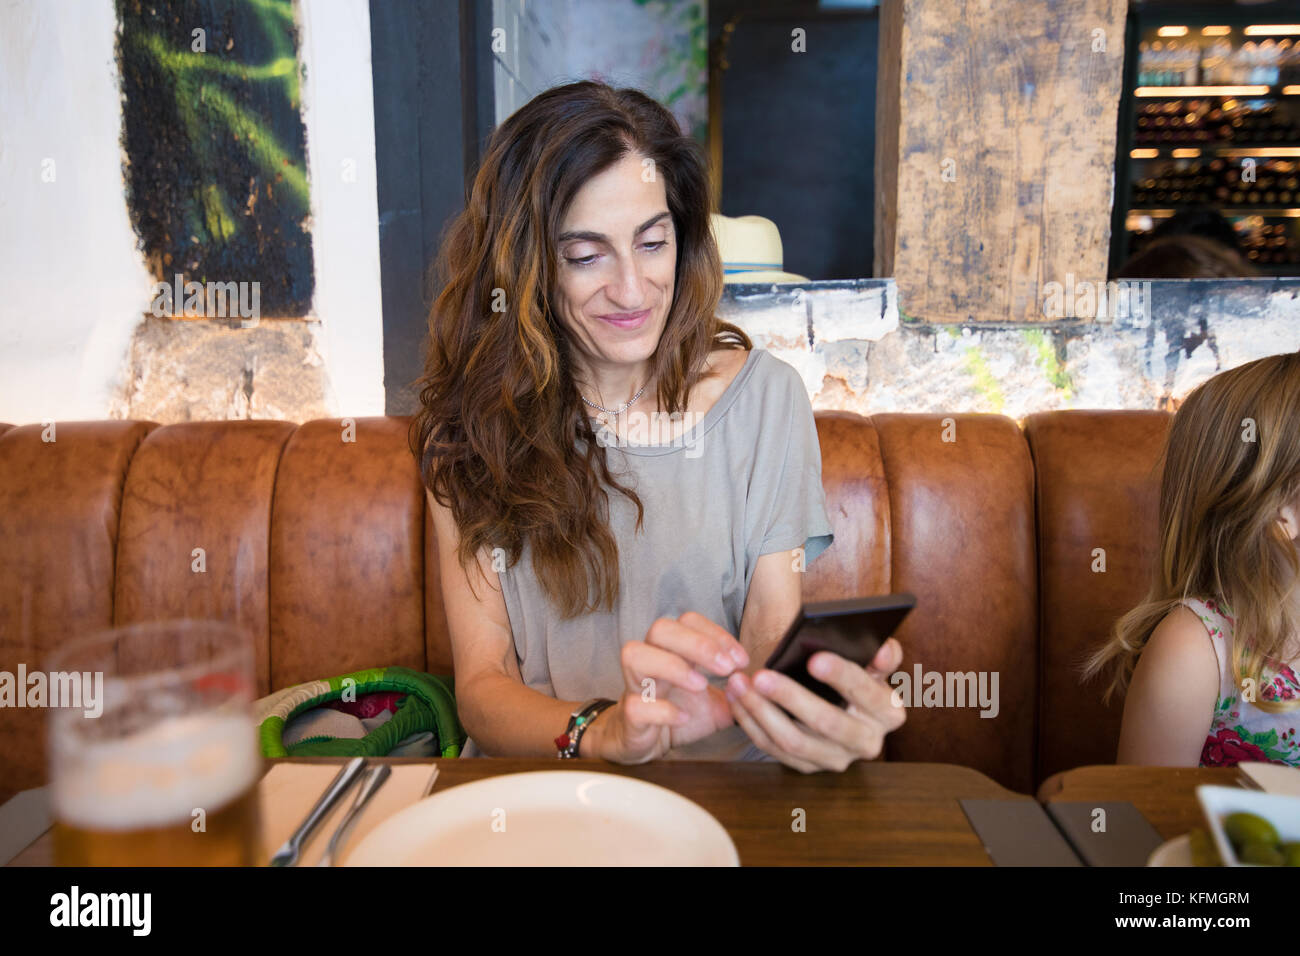 woman mother in restaurant, touching and watching smartphone, sitting next to four years age blonde girl - Stock Image